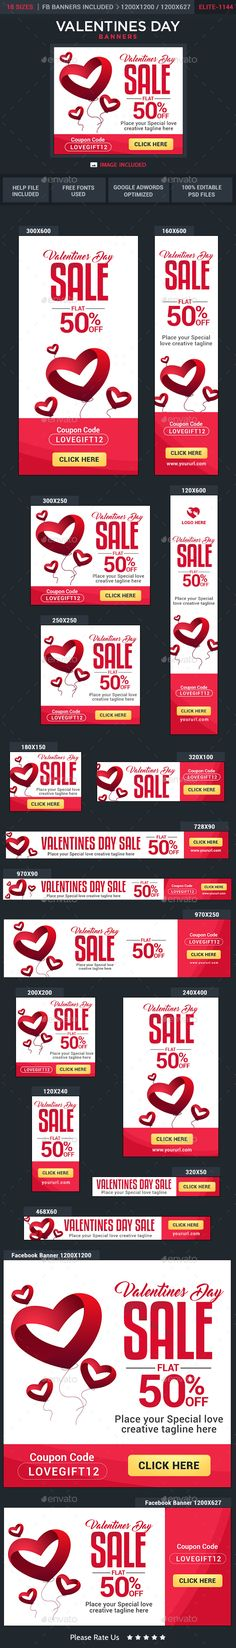 Valentines Day Sale Web Banners Template PSD #ads Download here: http://graphicriver.net/item/valentines-day-sale-banners/14752761?ref=ksioks